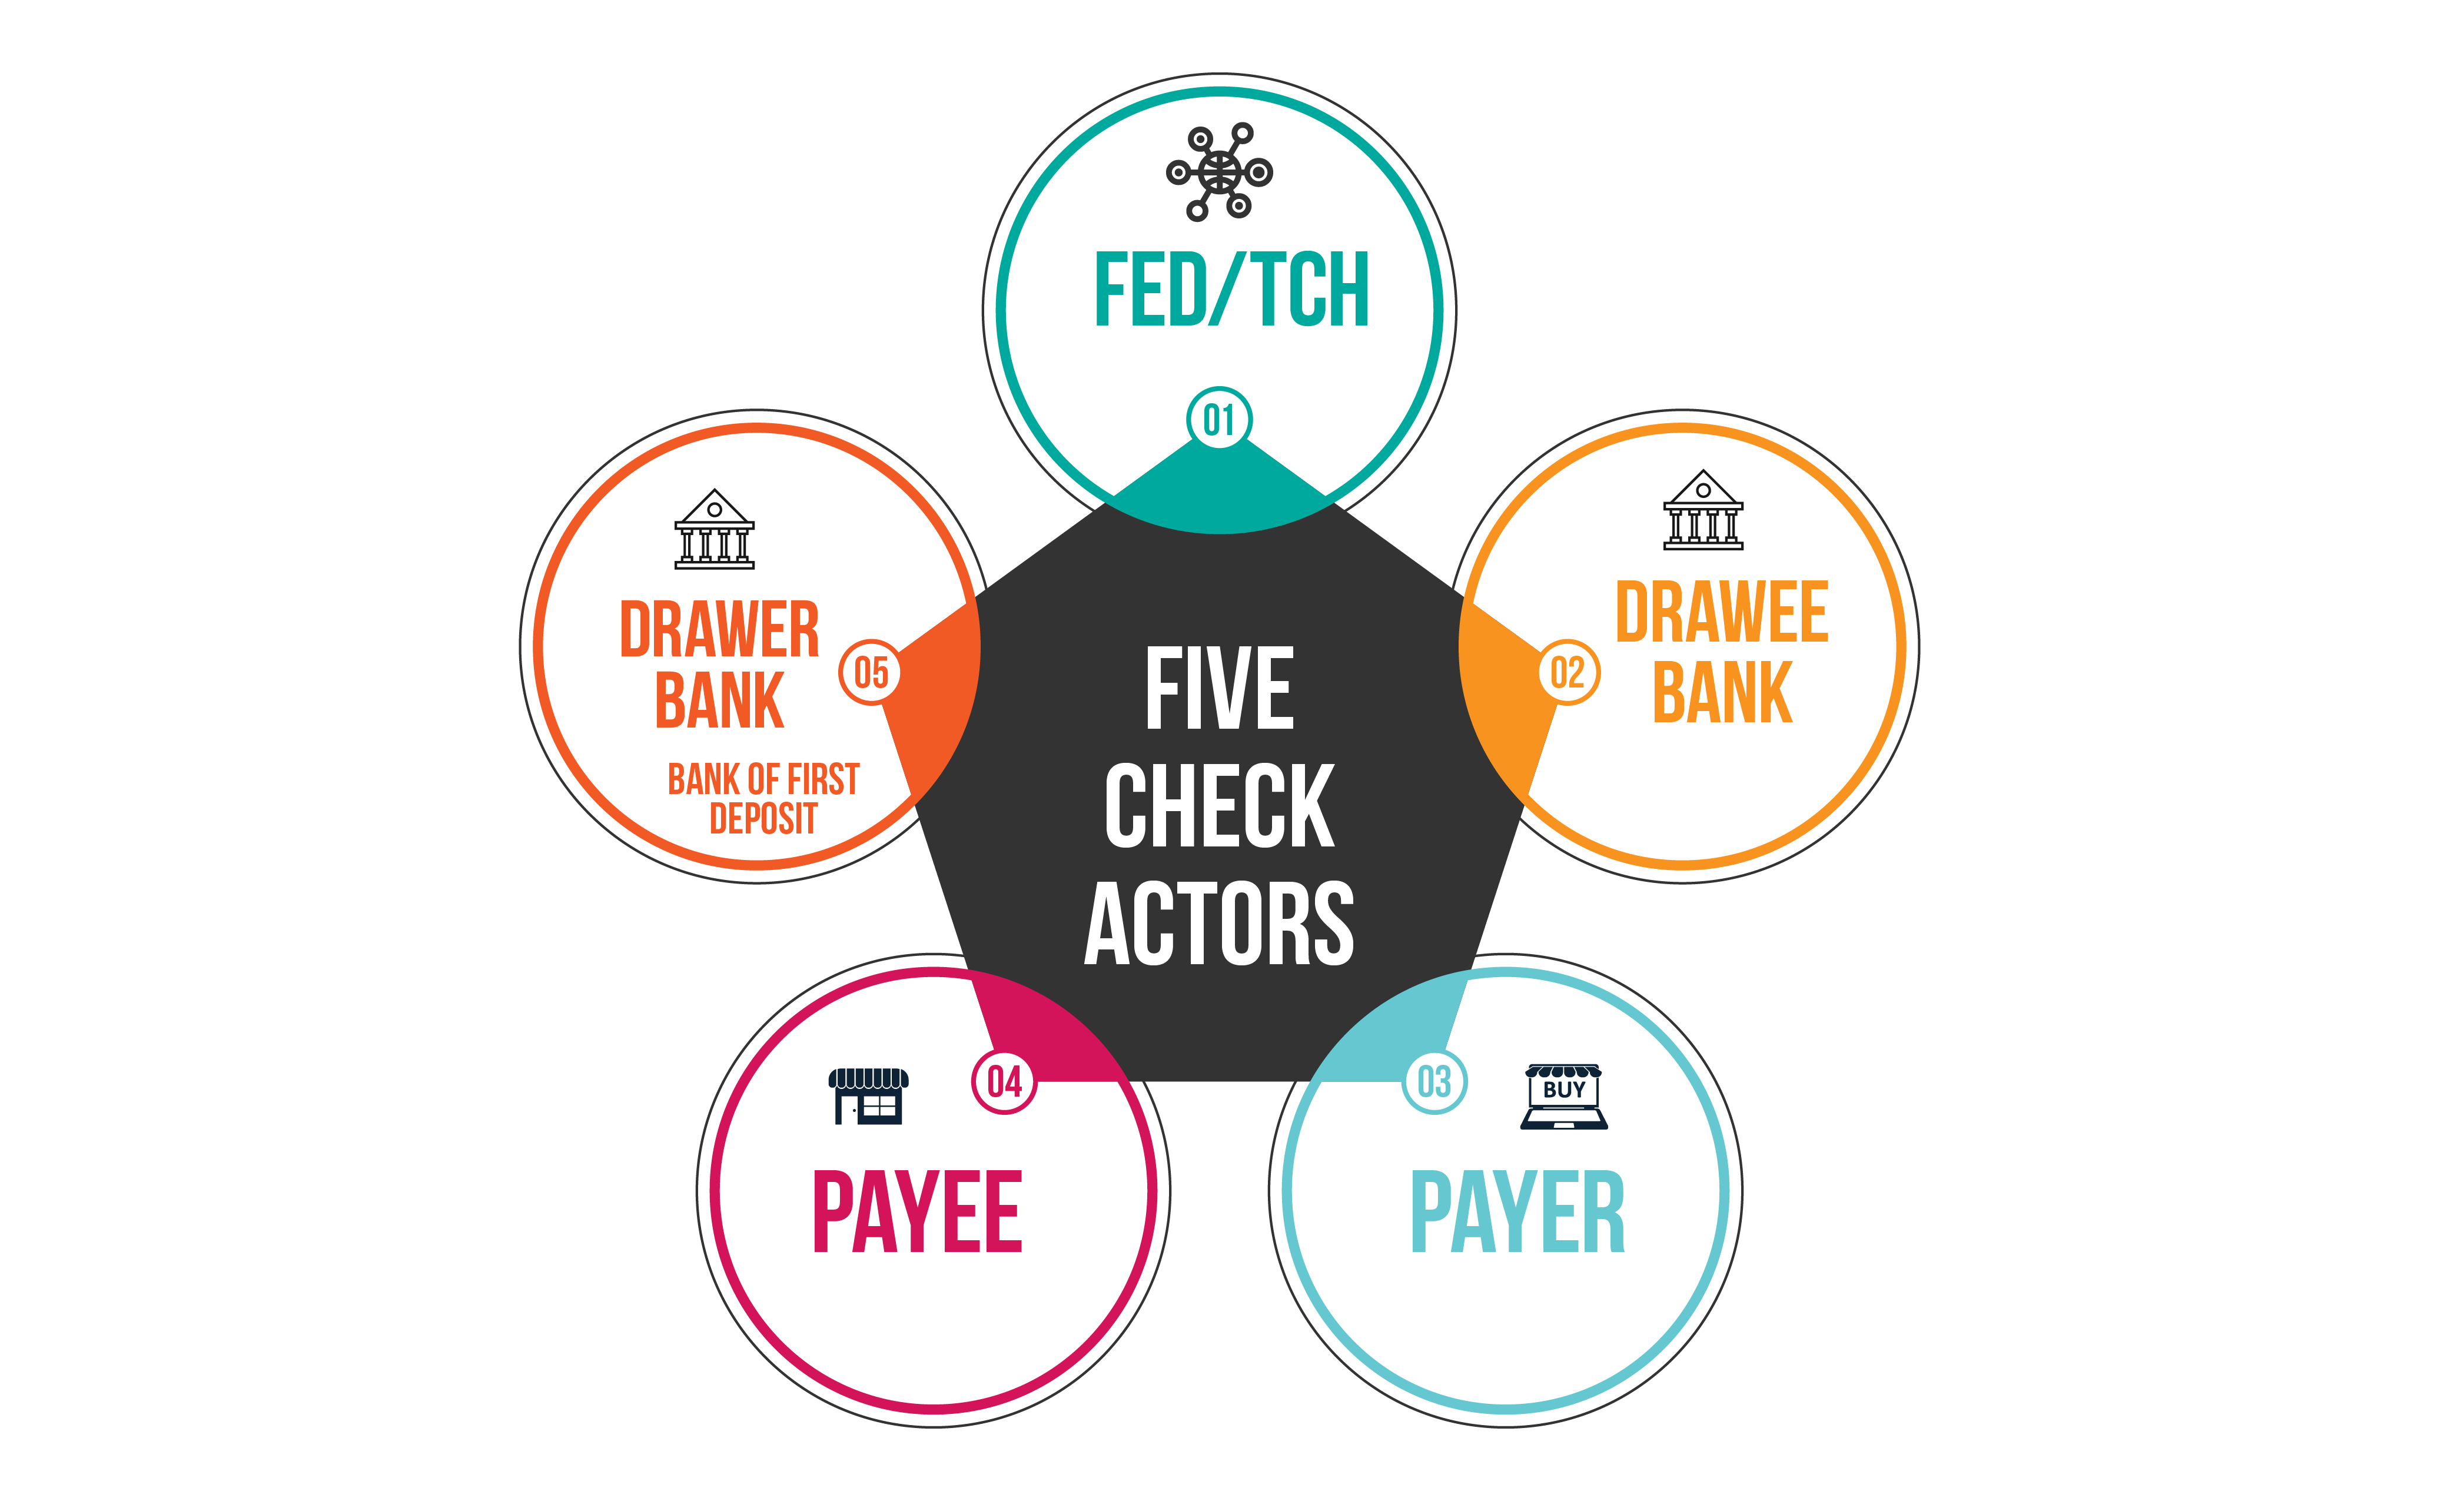 The five-actor model adapted to checks. Buyer and seller are payor and payee, buyer's bank and seller's bank are drawee and drawer banks, and the network is one of two clearinghouses: The Federal Reserve and The Clearinghouse.